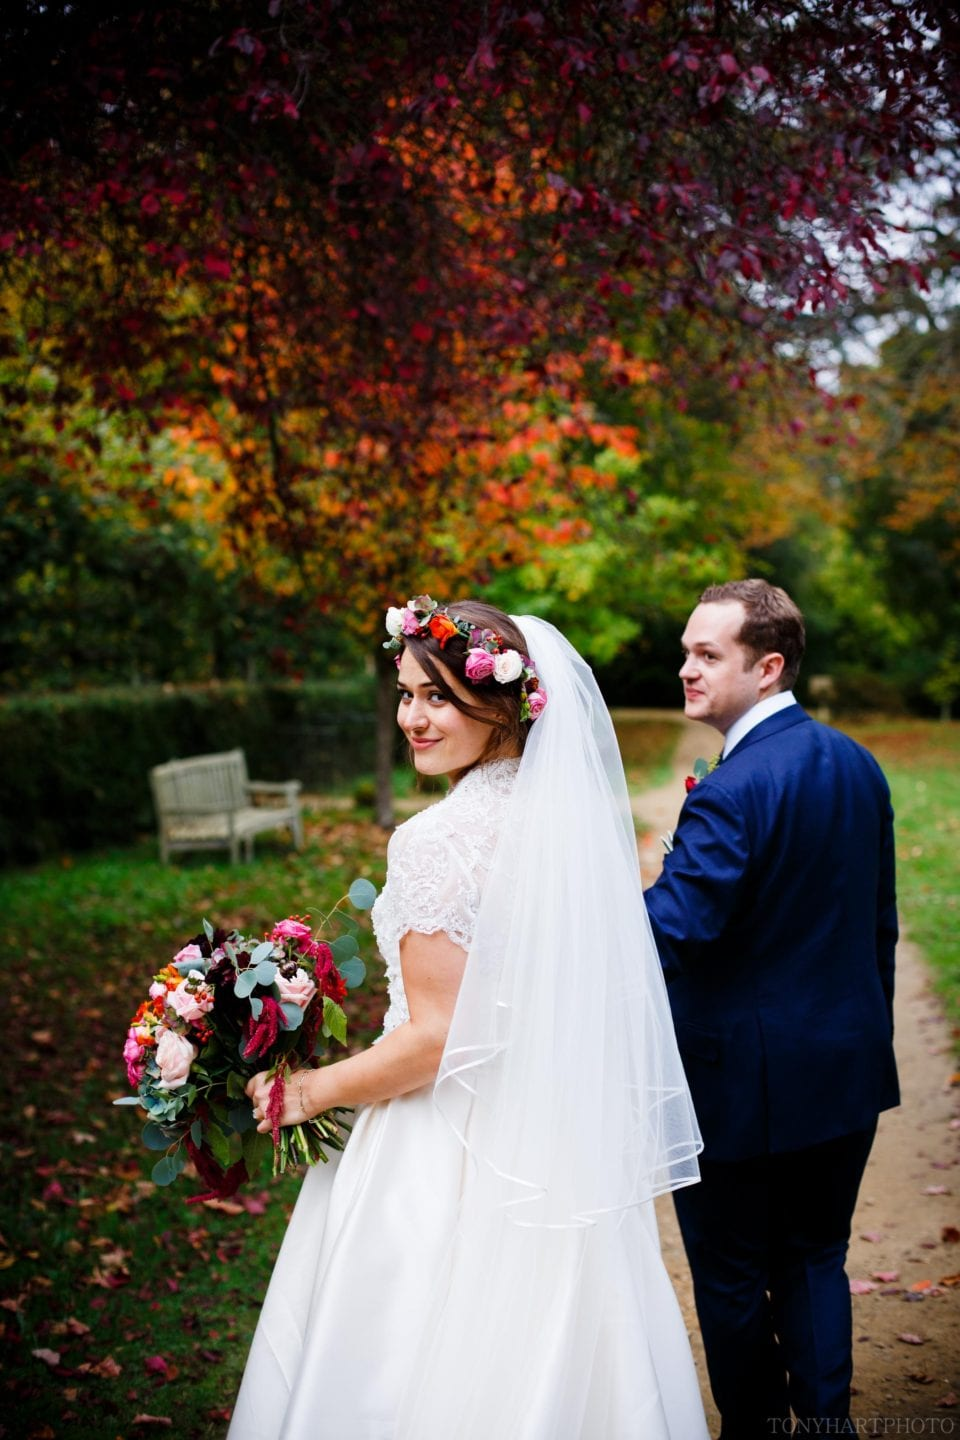 The Best Wedding Photographs of 2017 - Ali & Nic went for a stroll and a few portraits shortly before the wedding breakfast at Ramster Hall. I love her beautiful bouquet and flower crown